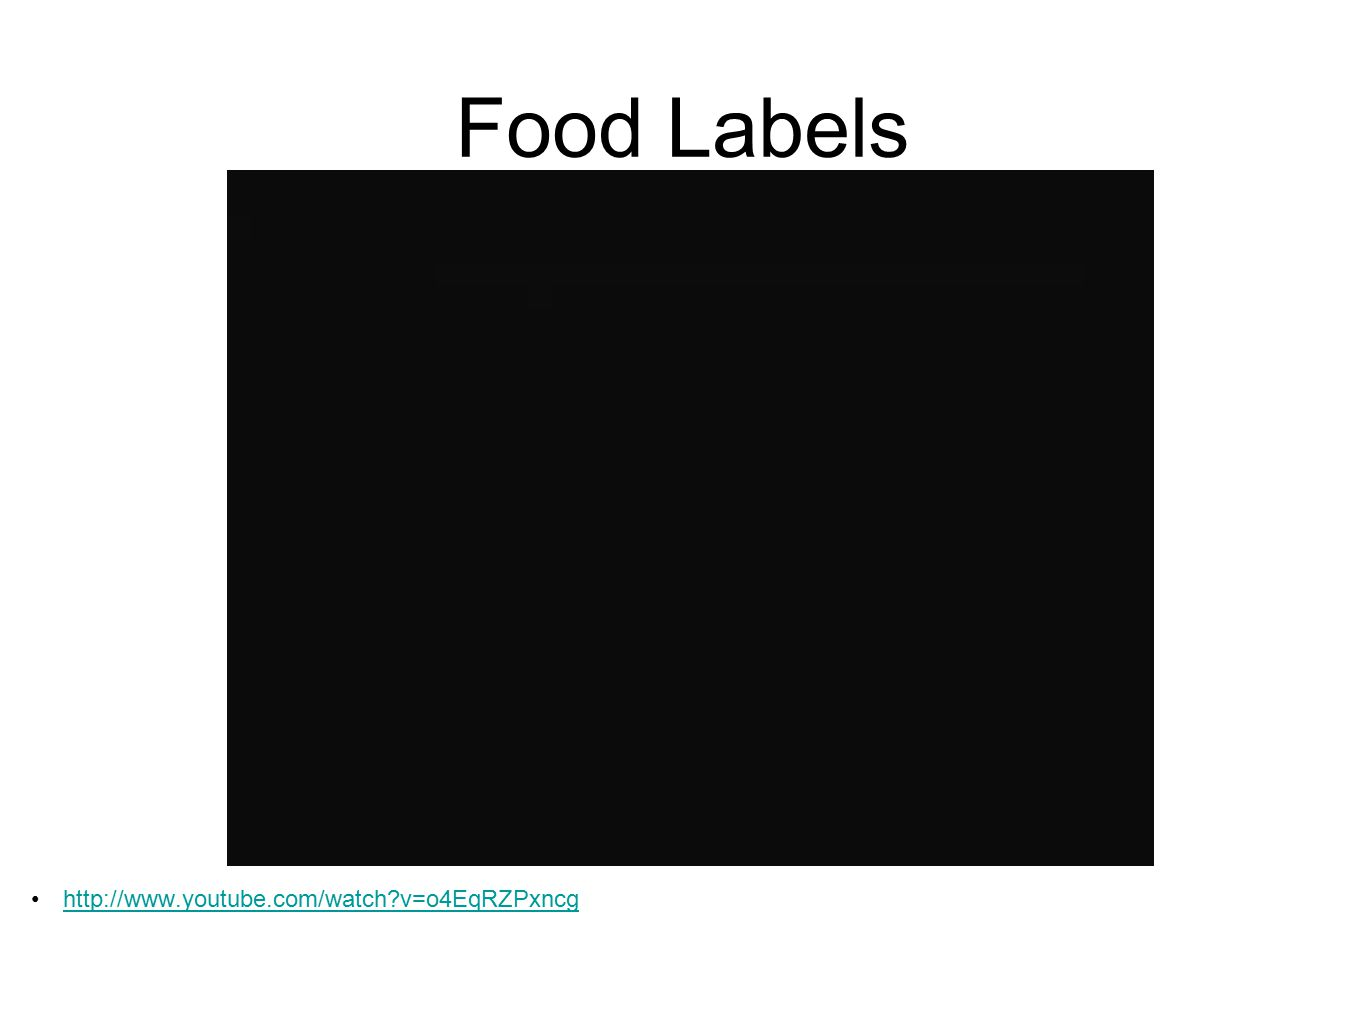 Food Labels http://www.youtube.com/watch?v=o4EqRZPxncg